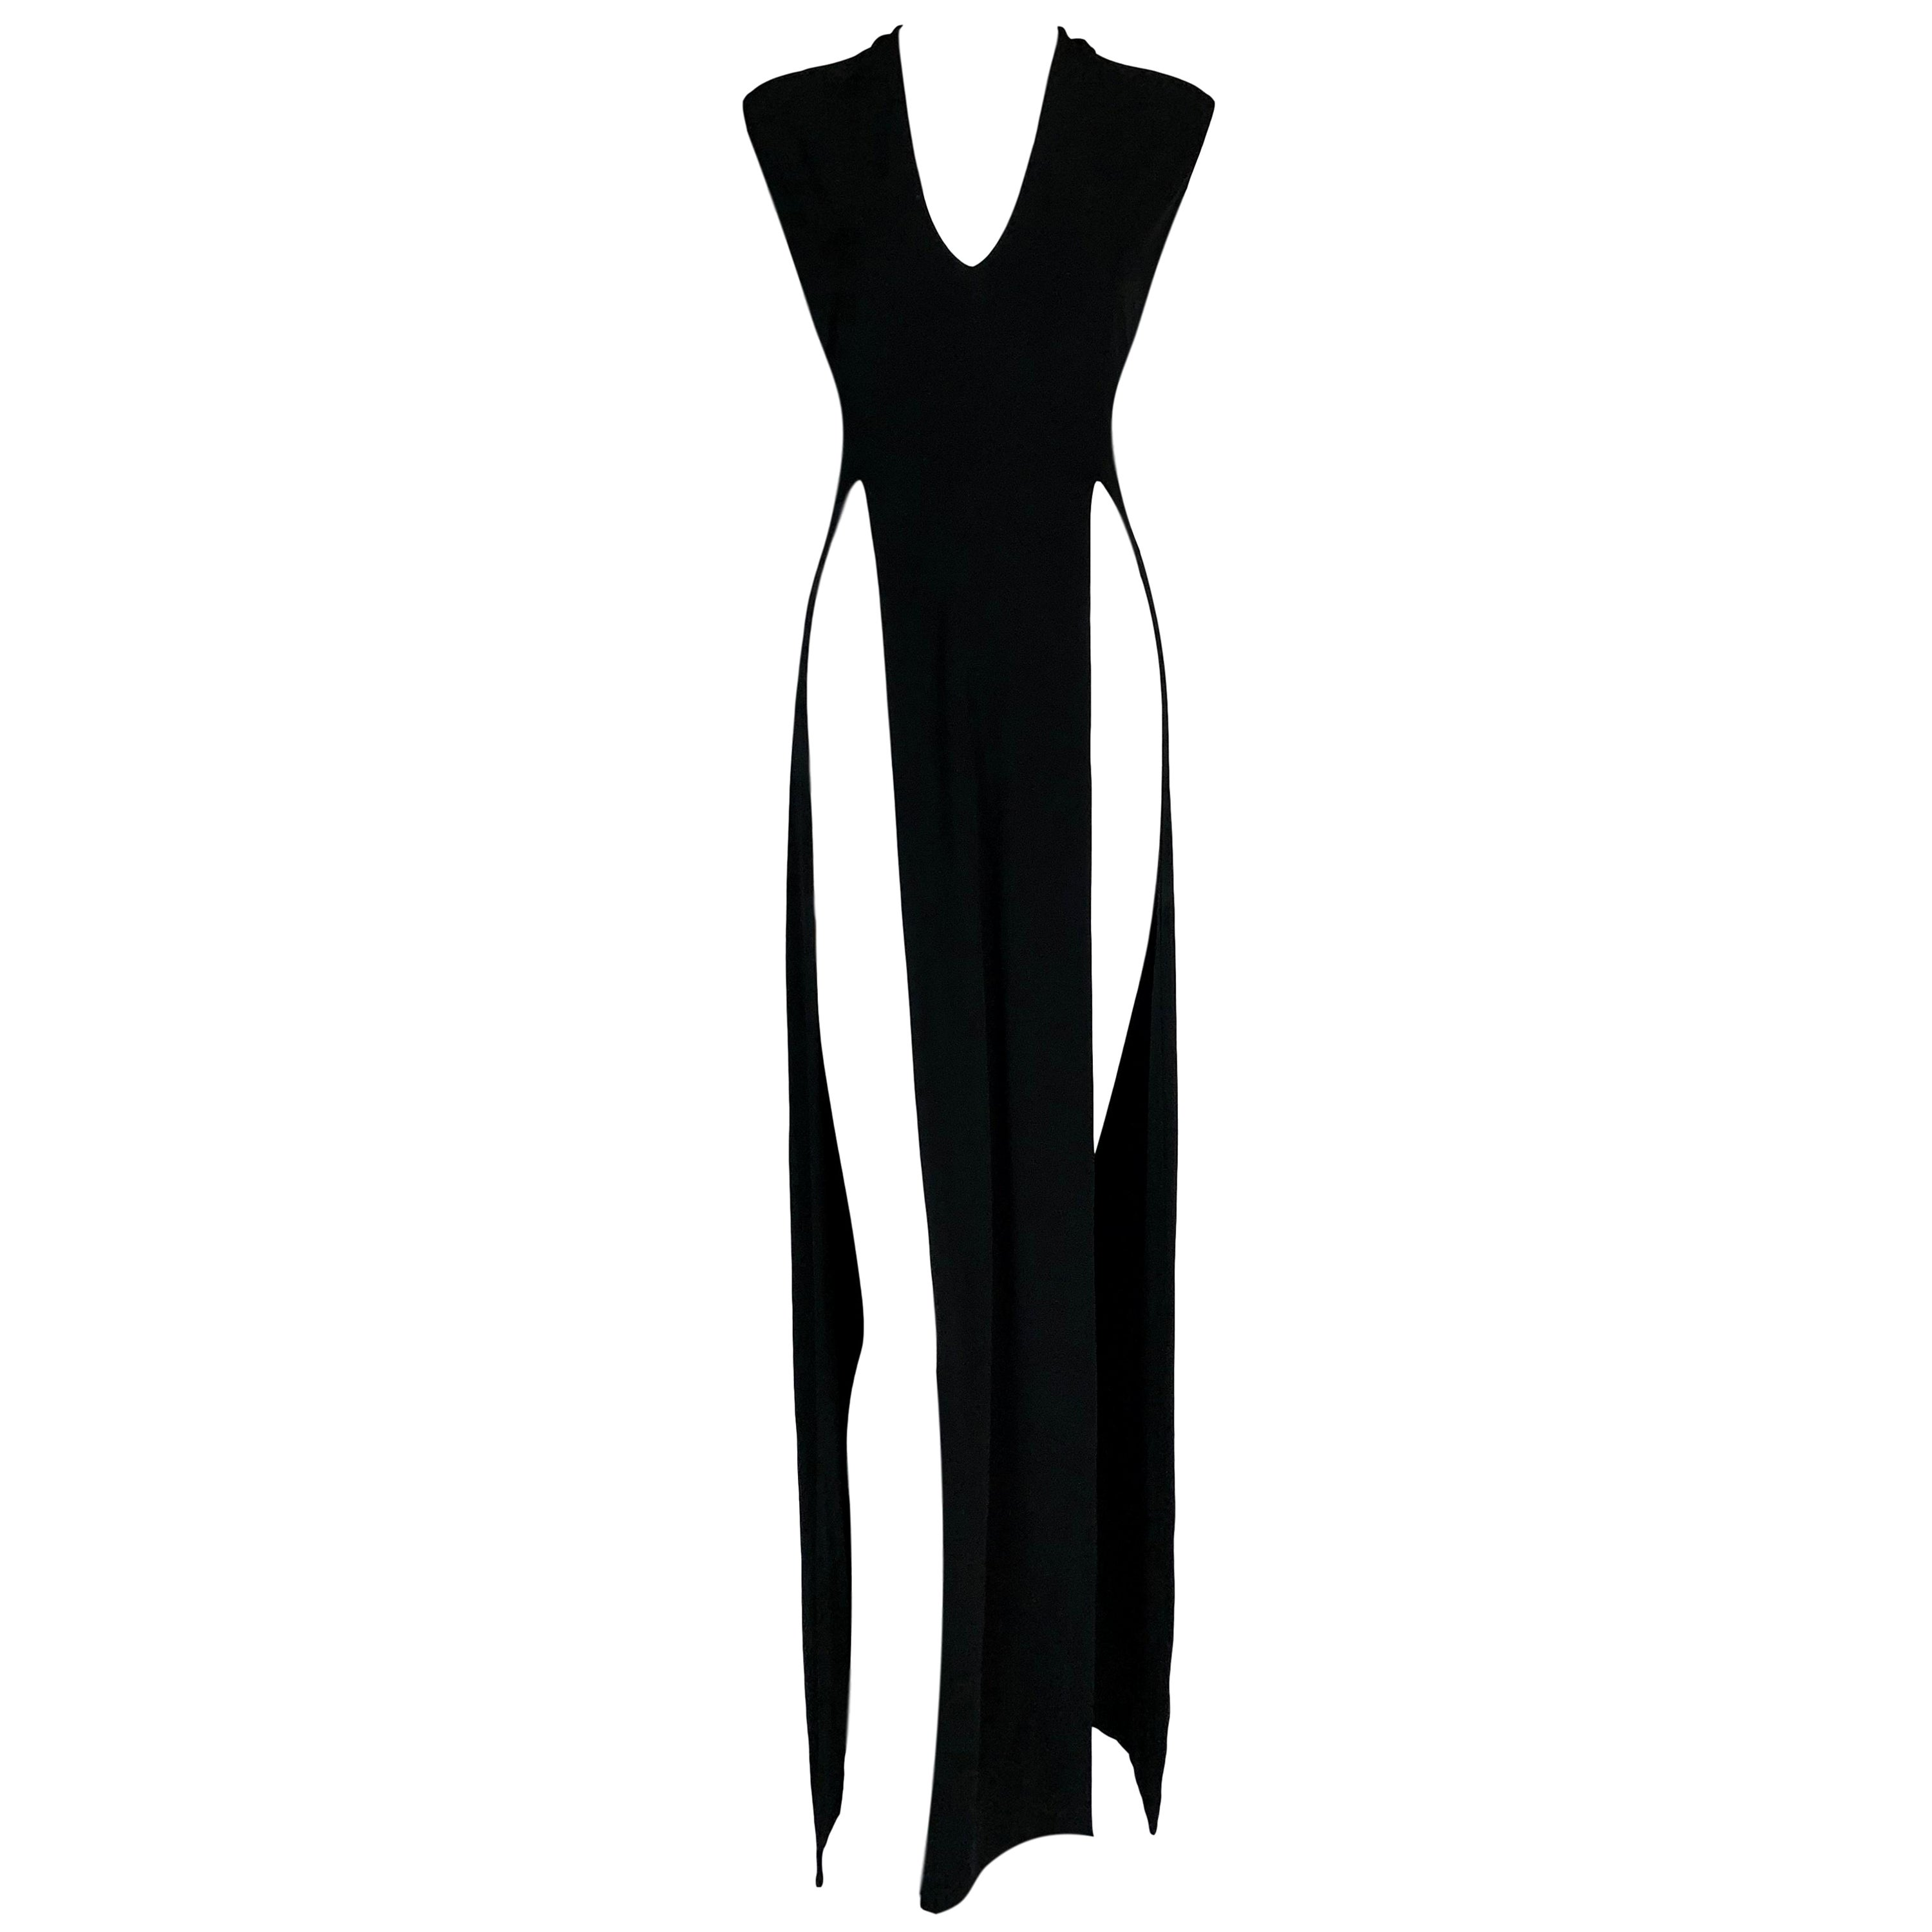 2000's Maison Martin Margiela Black Super High Slits Black Gown Dress